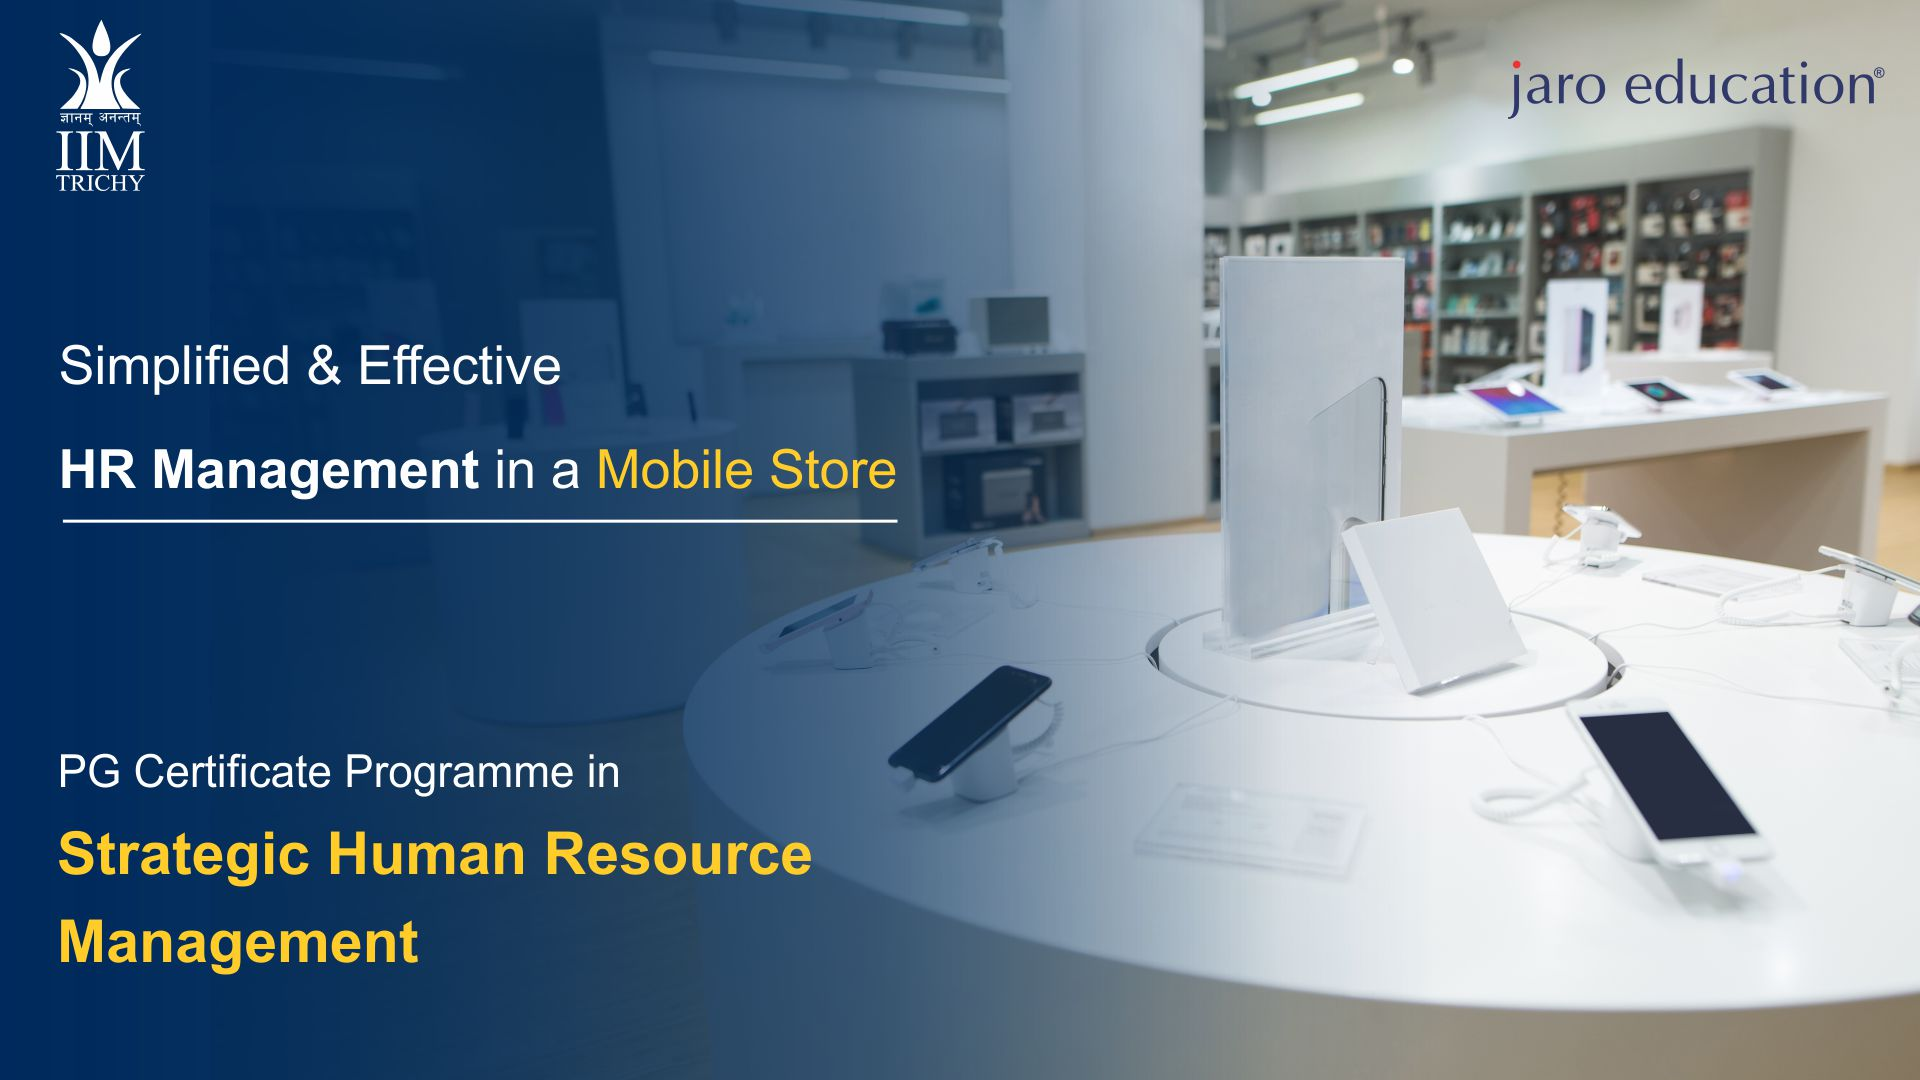 case study on effective HR management in a mobile store